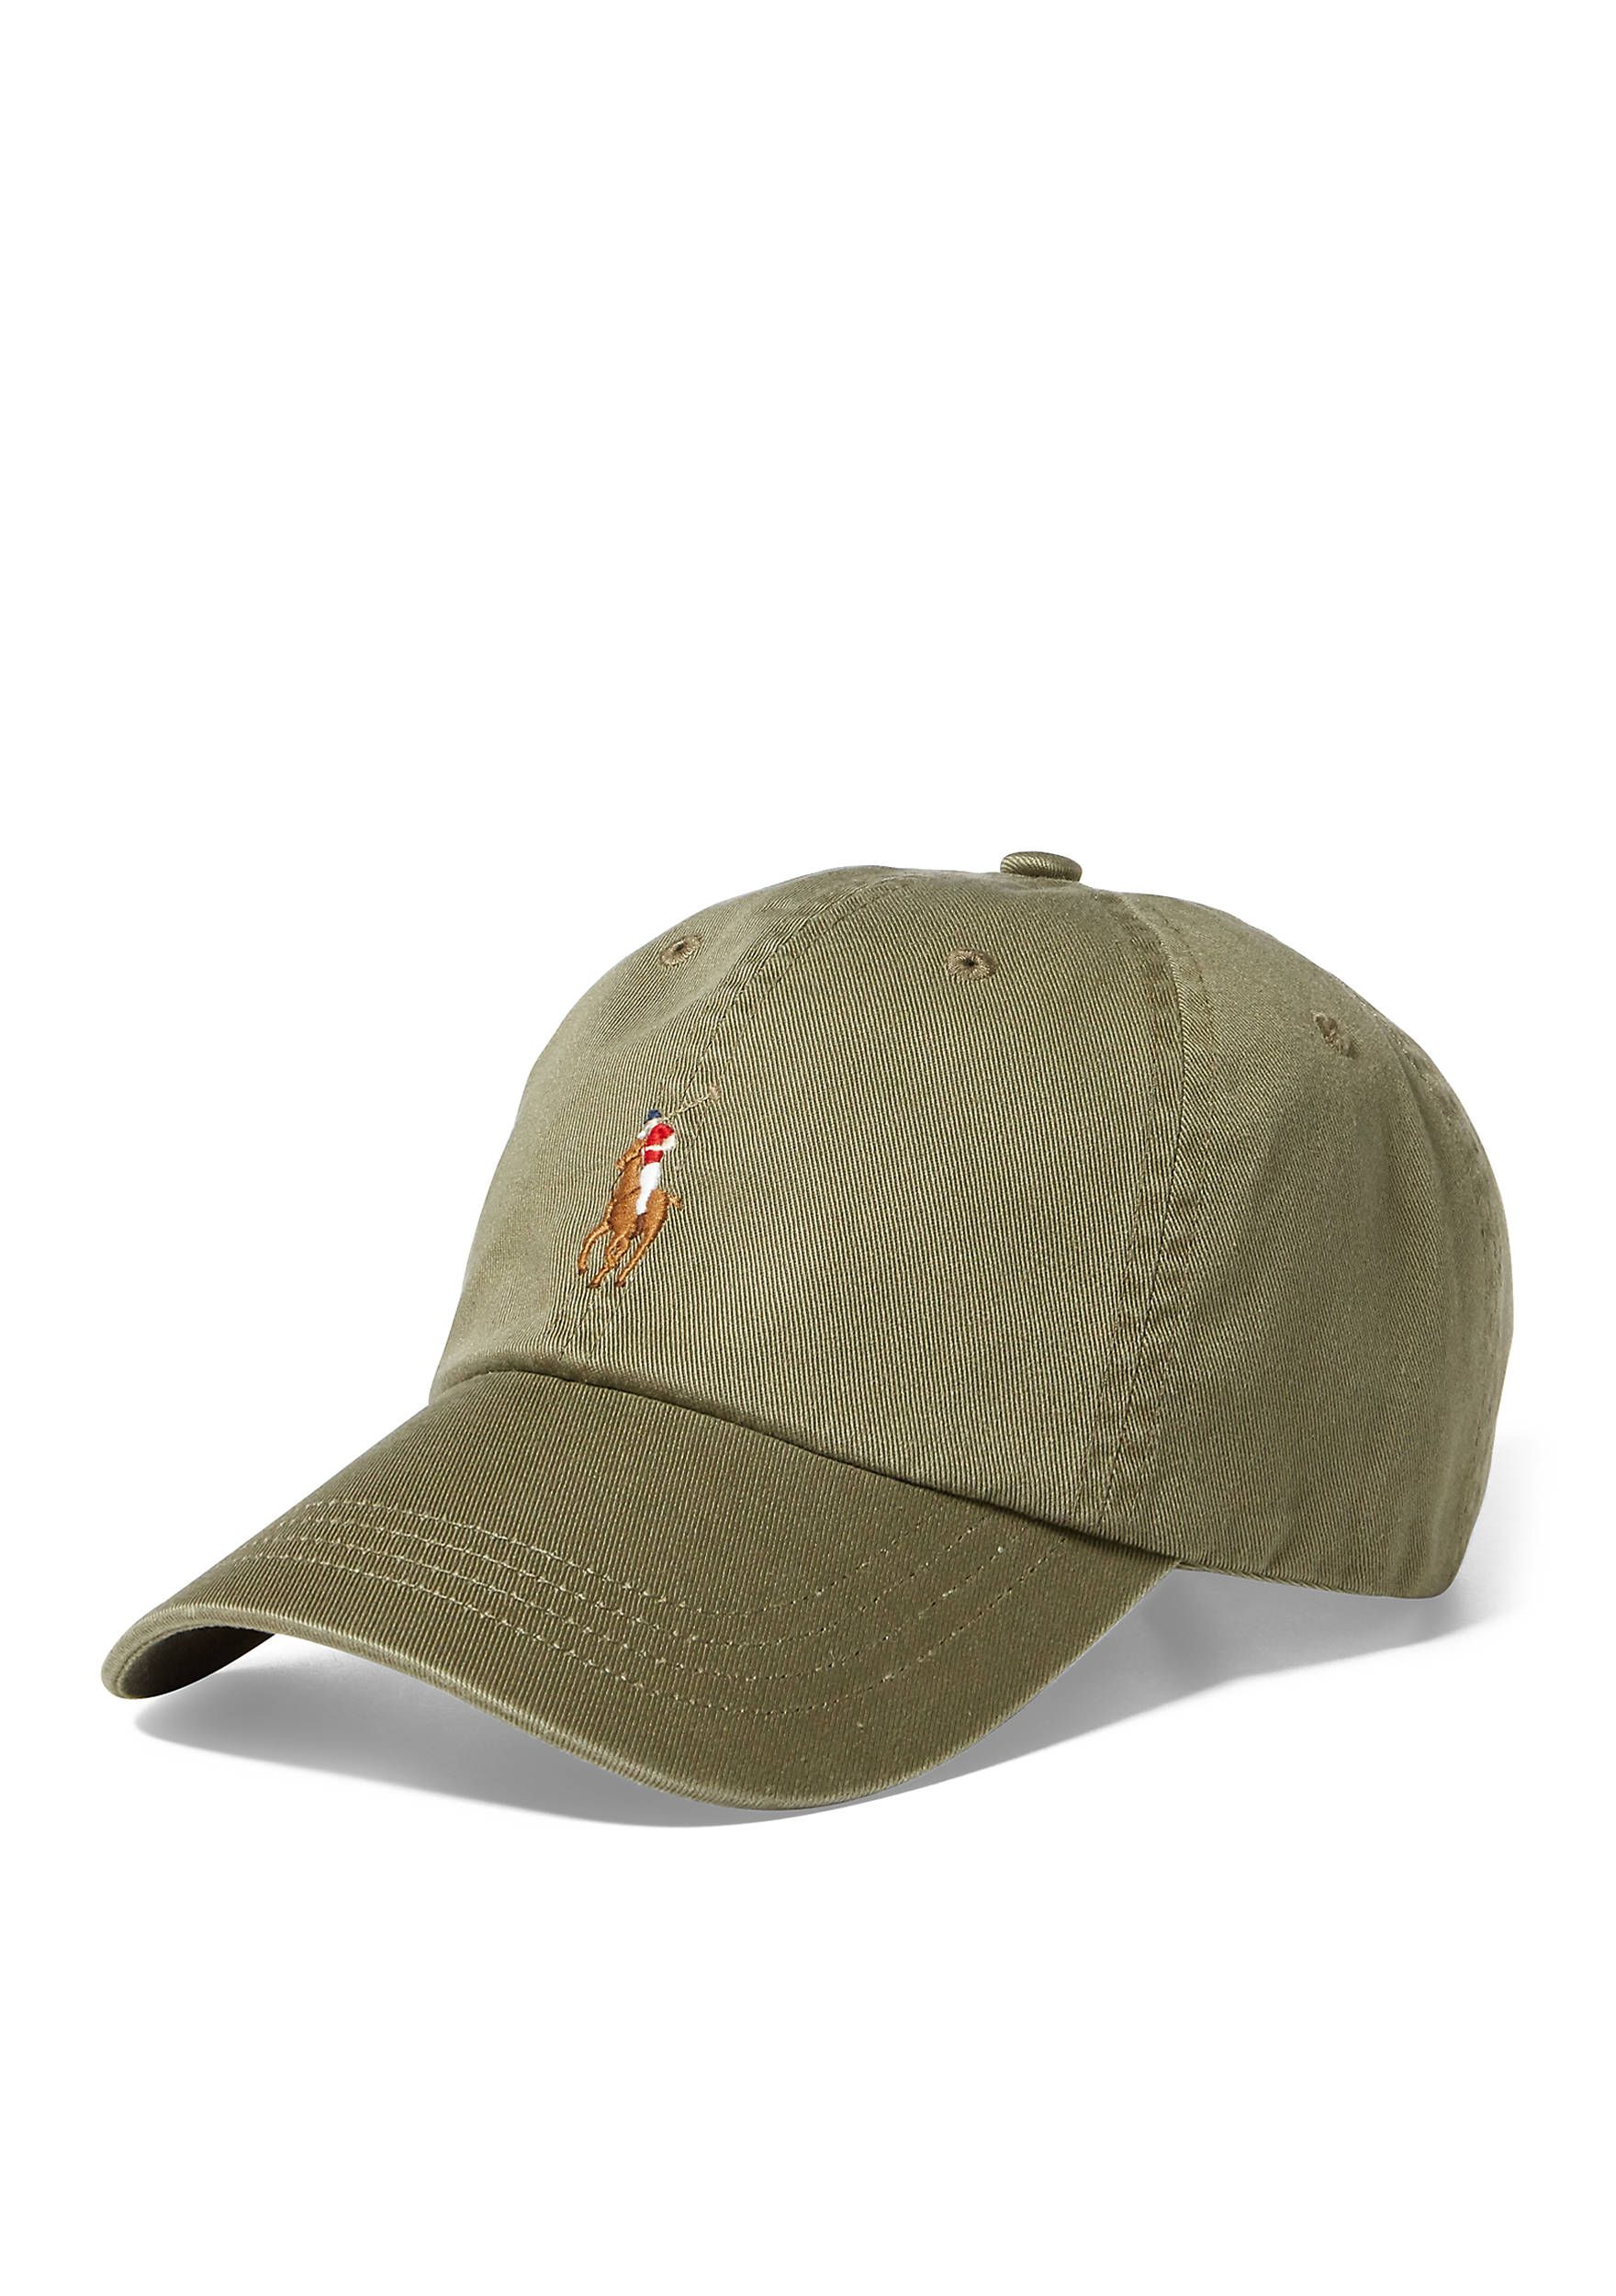 1fd3aef0ff4 Polo Ralph Lauren Classic Chino Sports Cap Green Men s Accessories Hats   Green 32016021227203